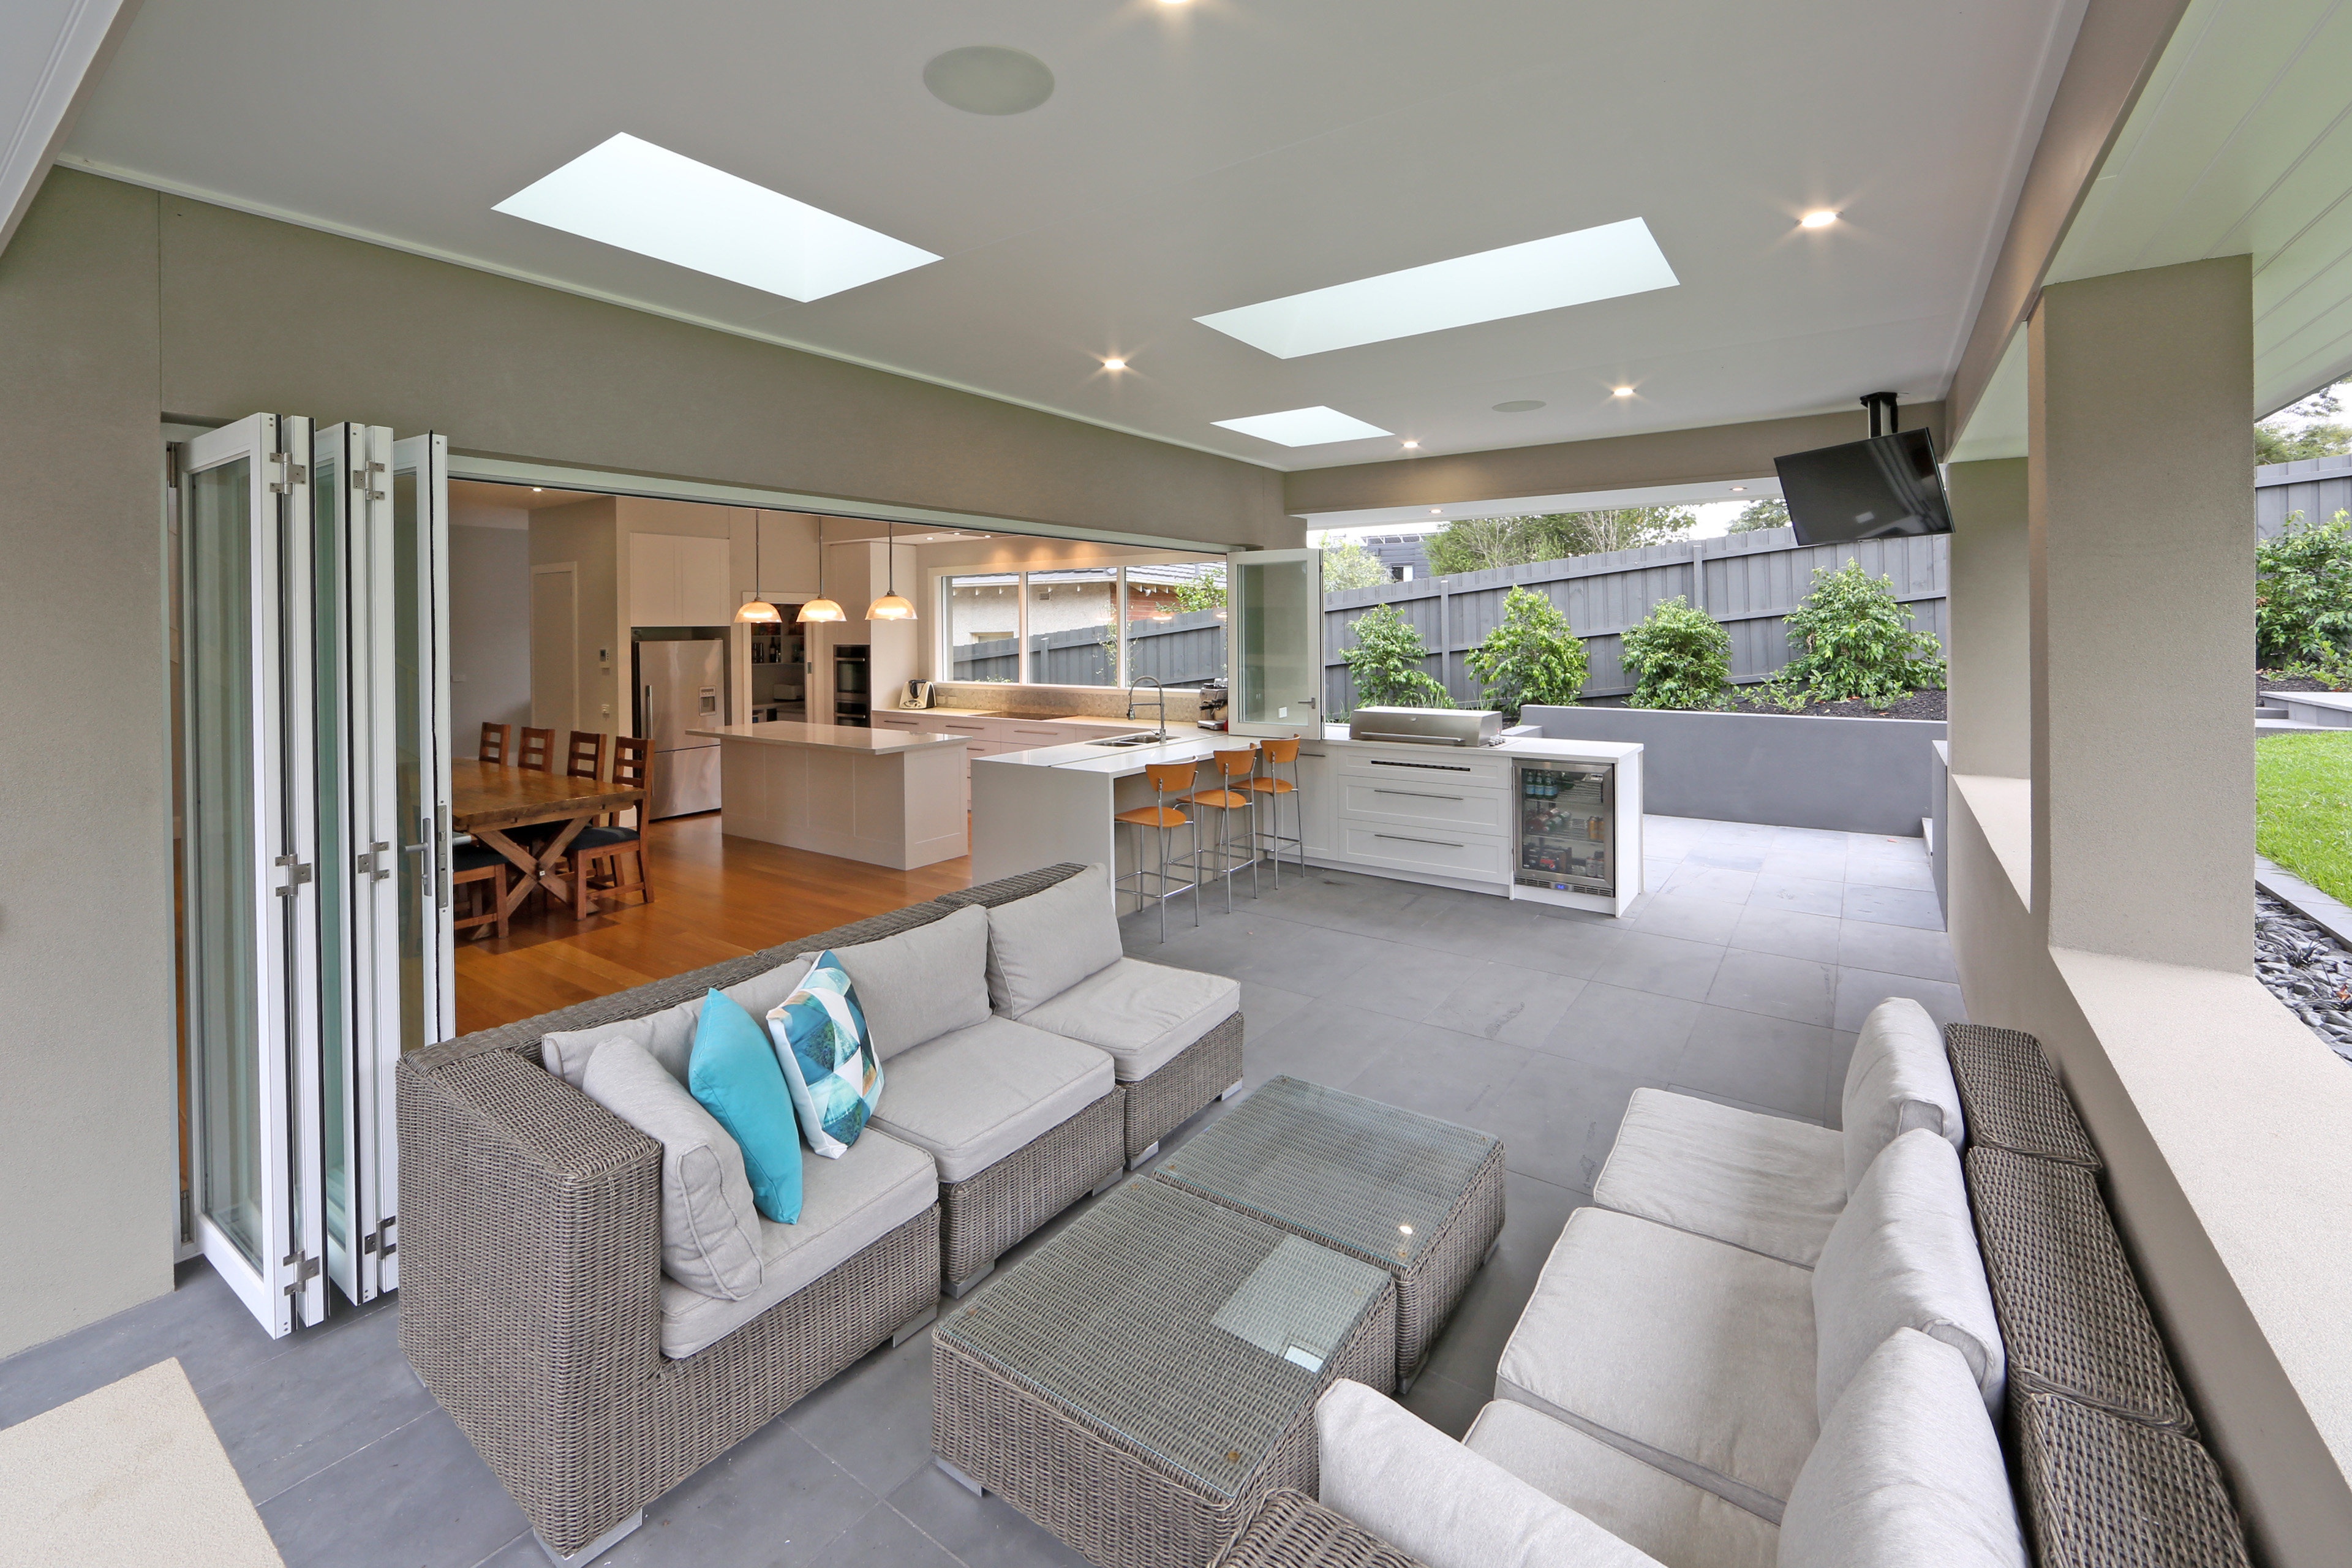 Melbourne contemporary kitchens french provincial for French provincial kitchen designs melbourne